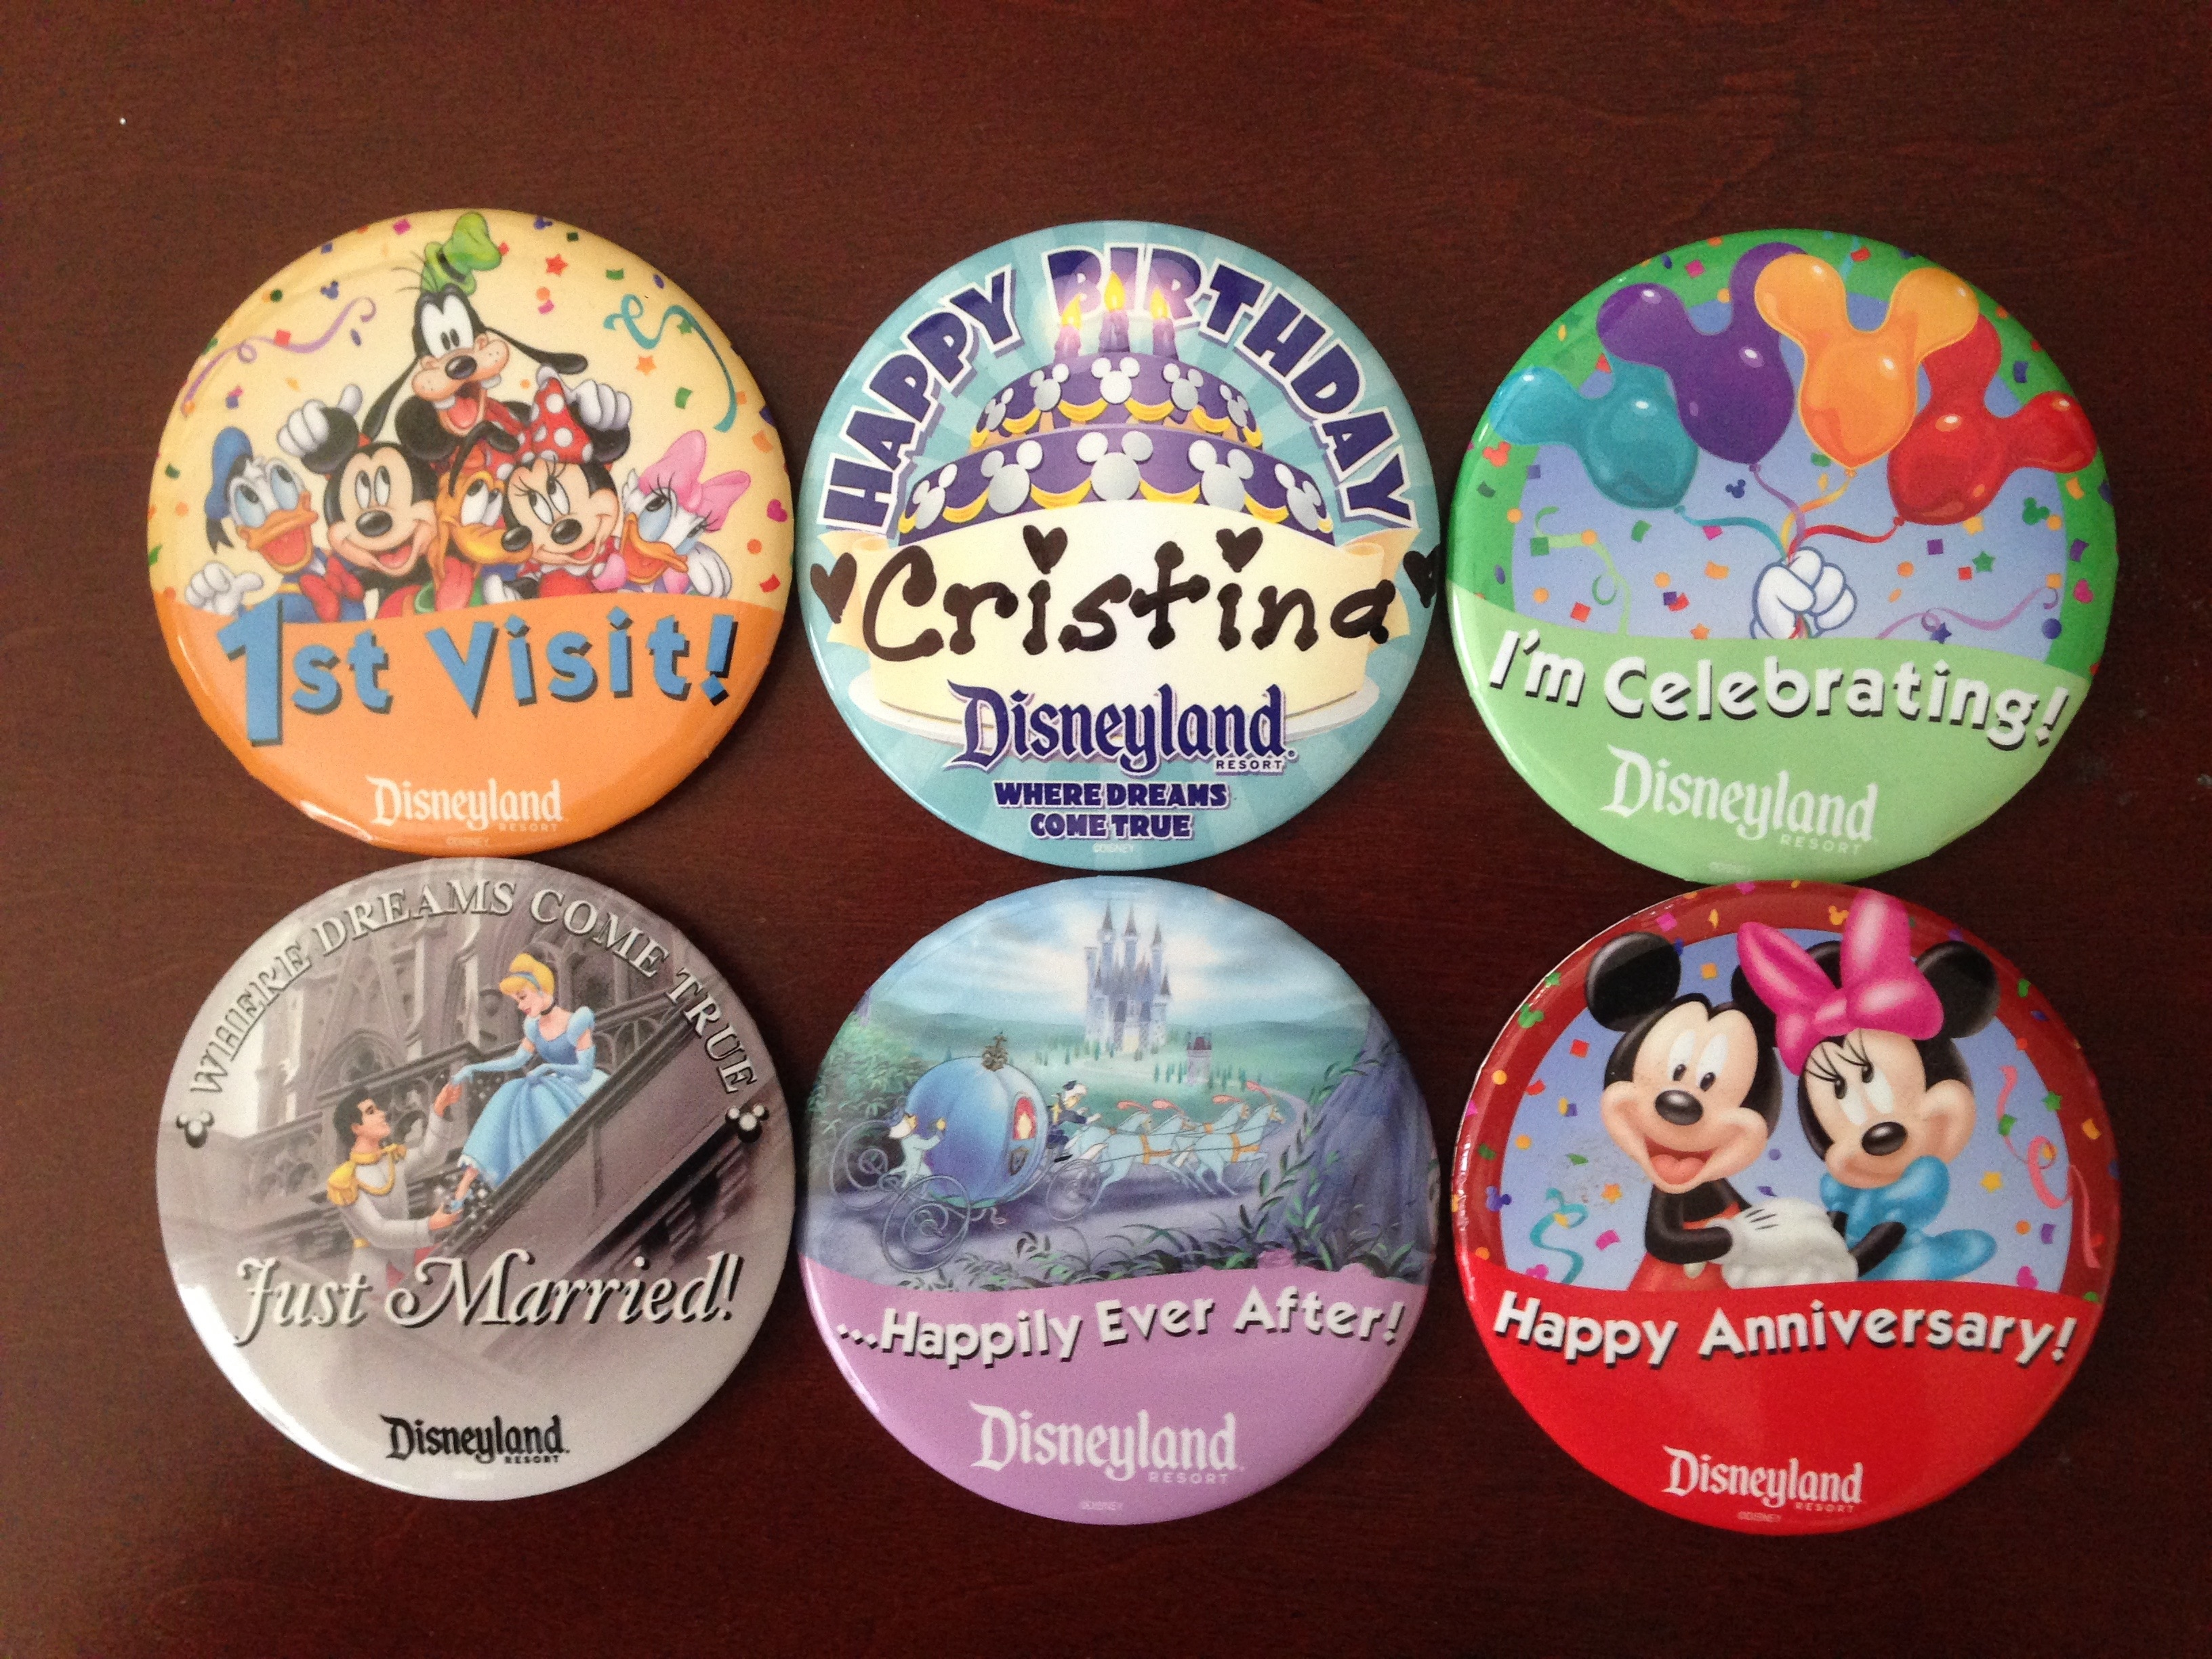 Free Souvenirs at The Disneyland Resort